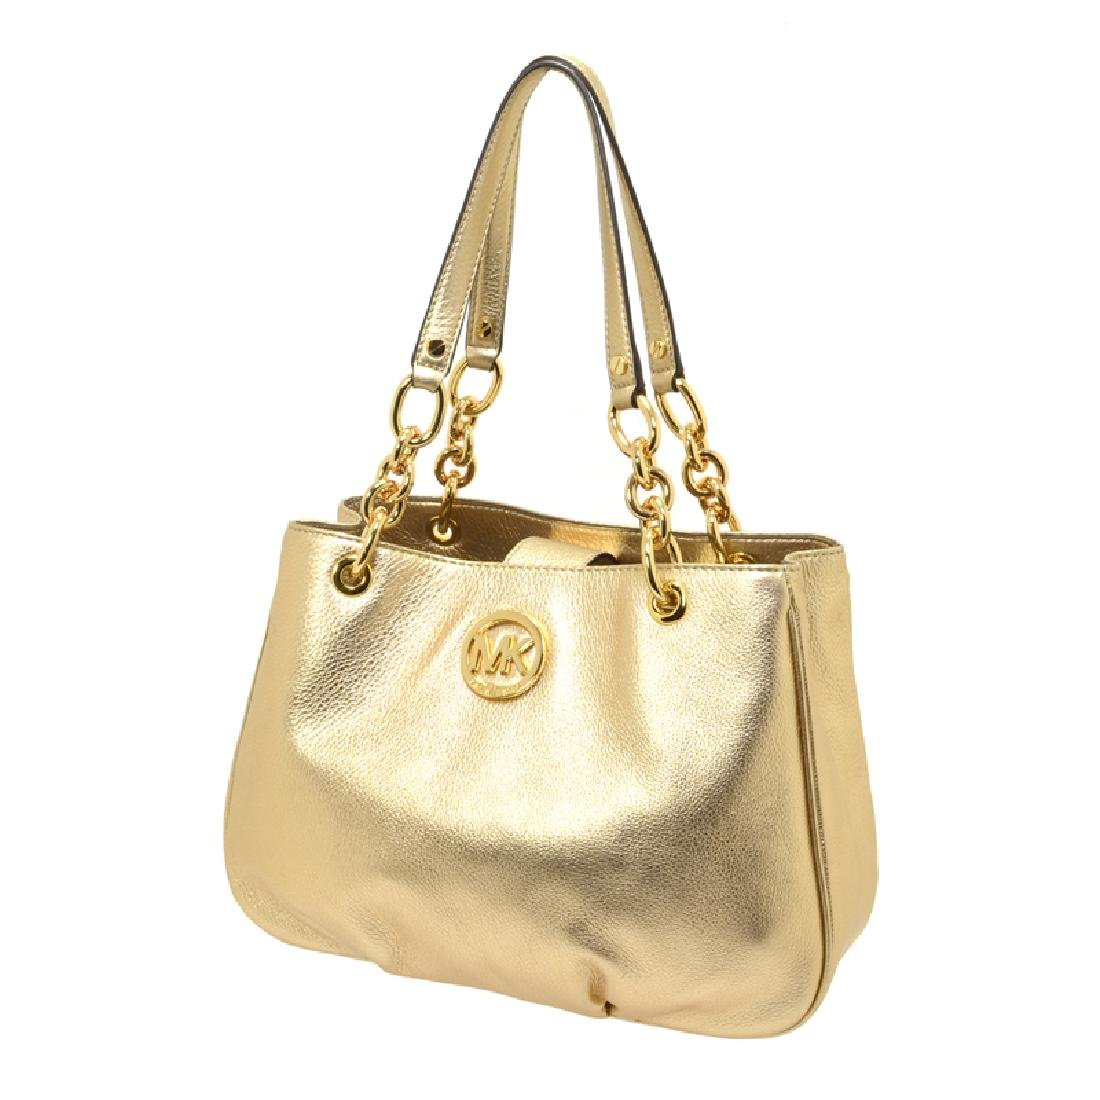 Brand New Michael Kors Fulton Chain Leather Pale Gold